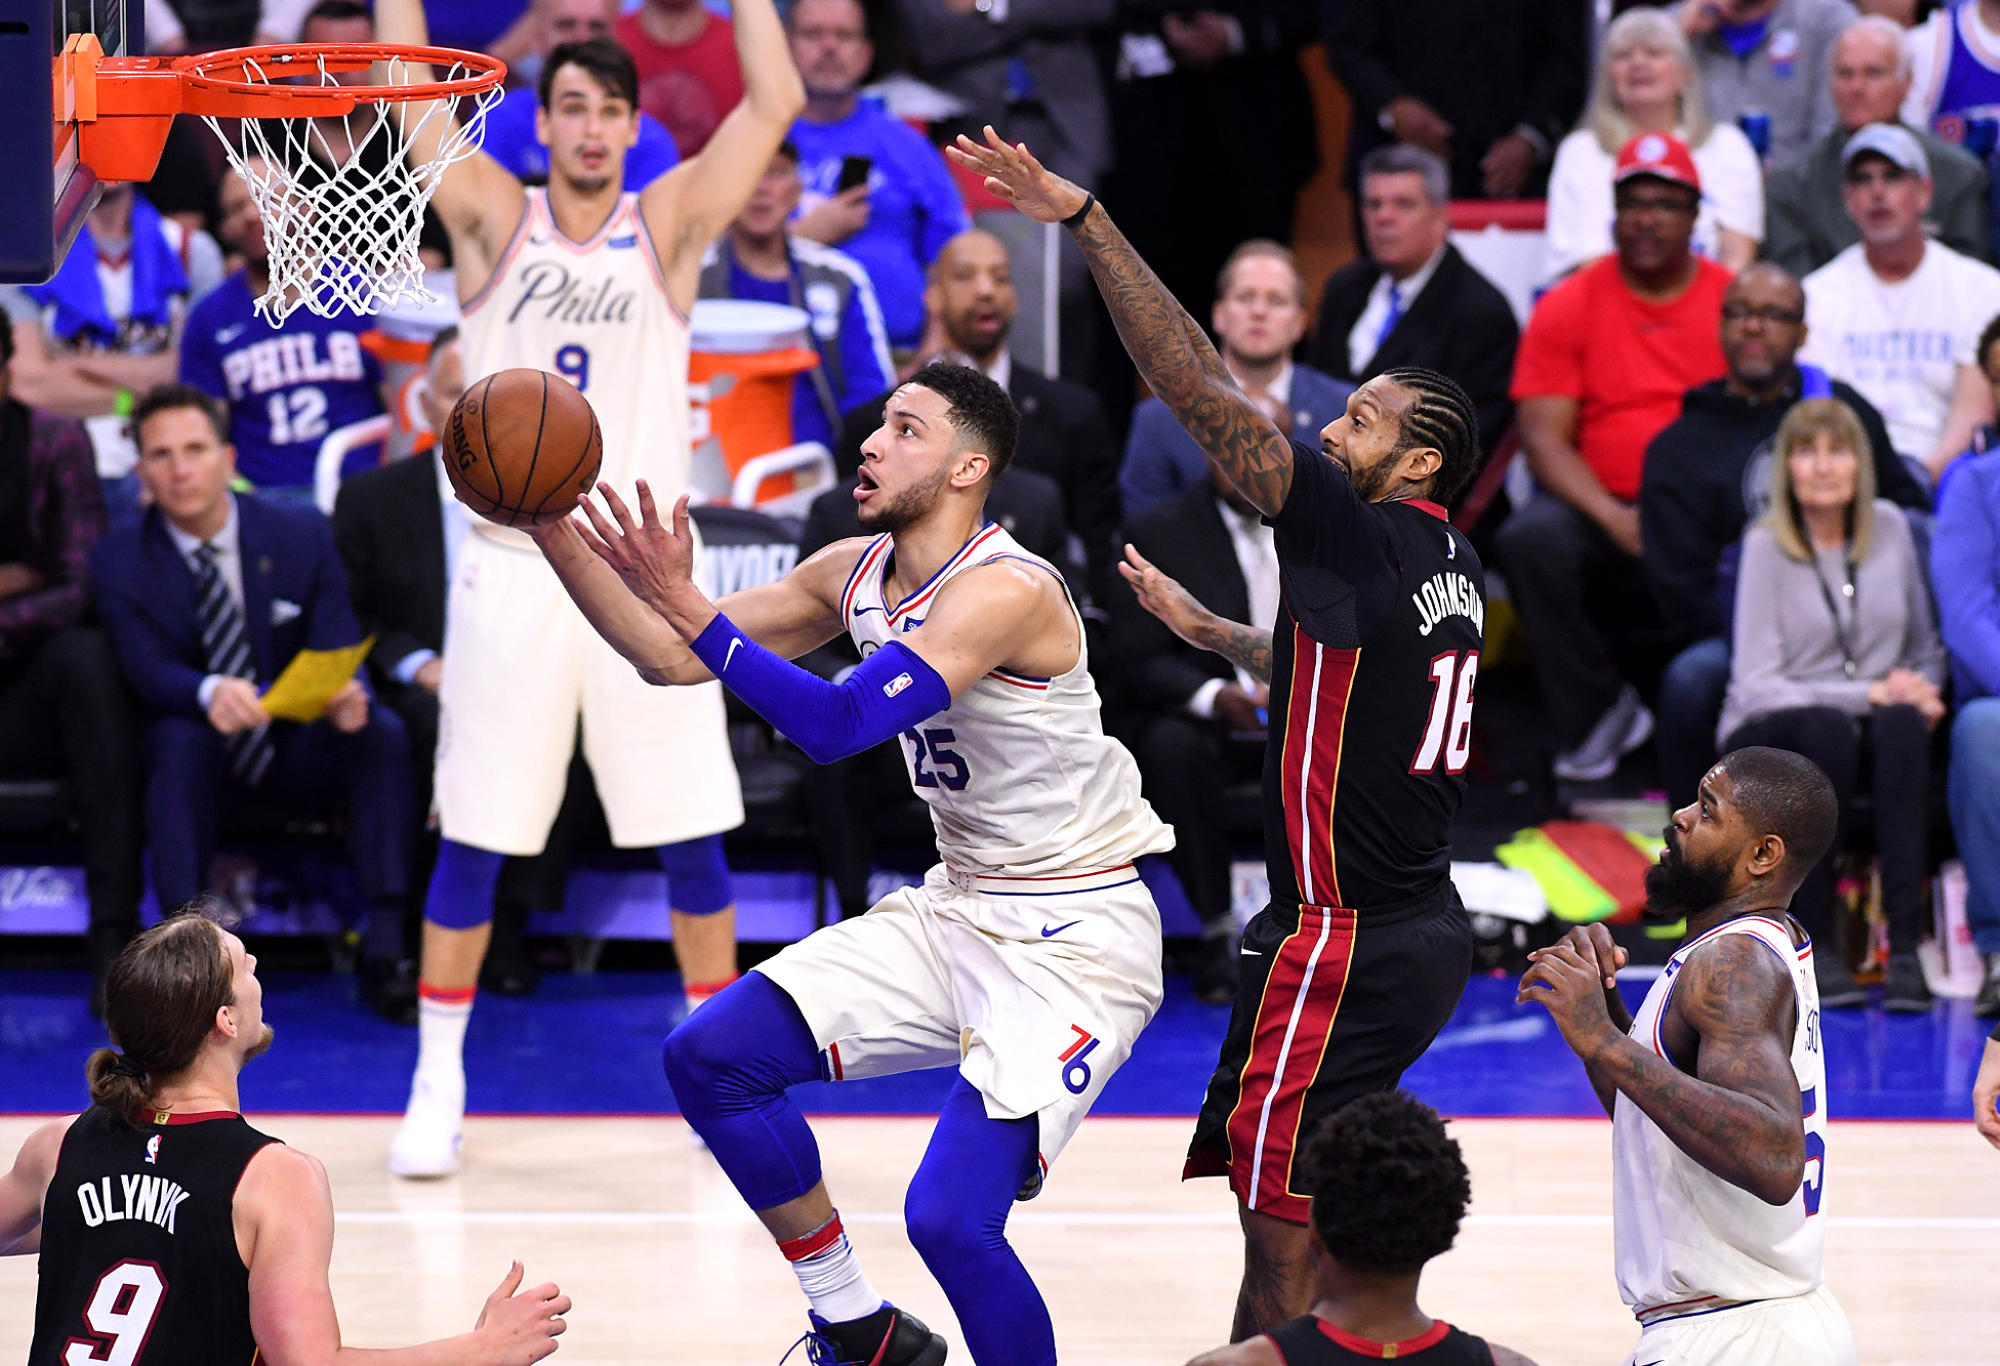 Ben Simmons drives to the rim against James Johnson in Game 2 of the first round of the NBA Playoffs.